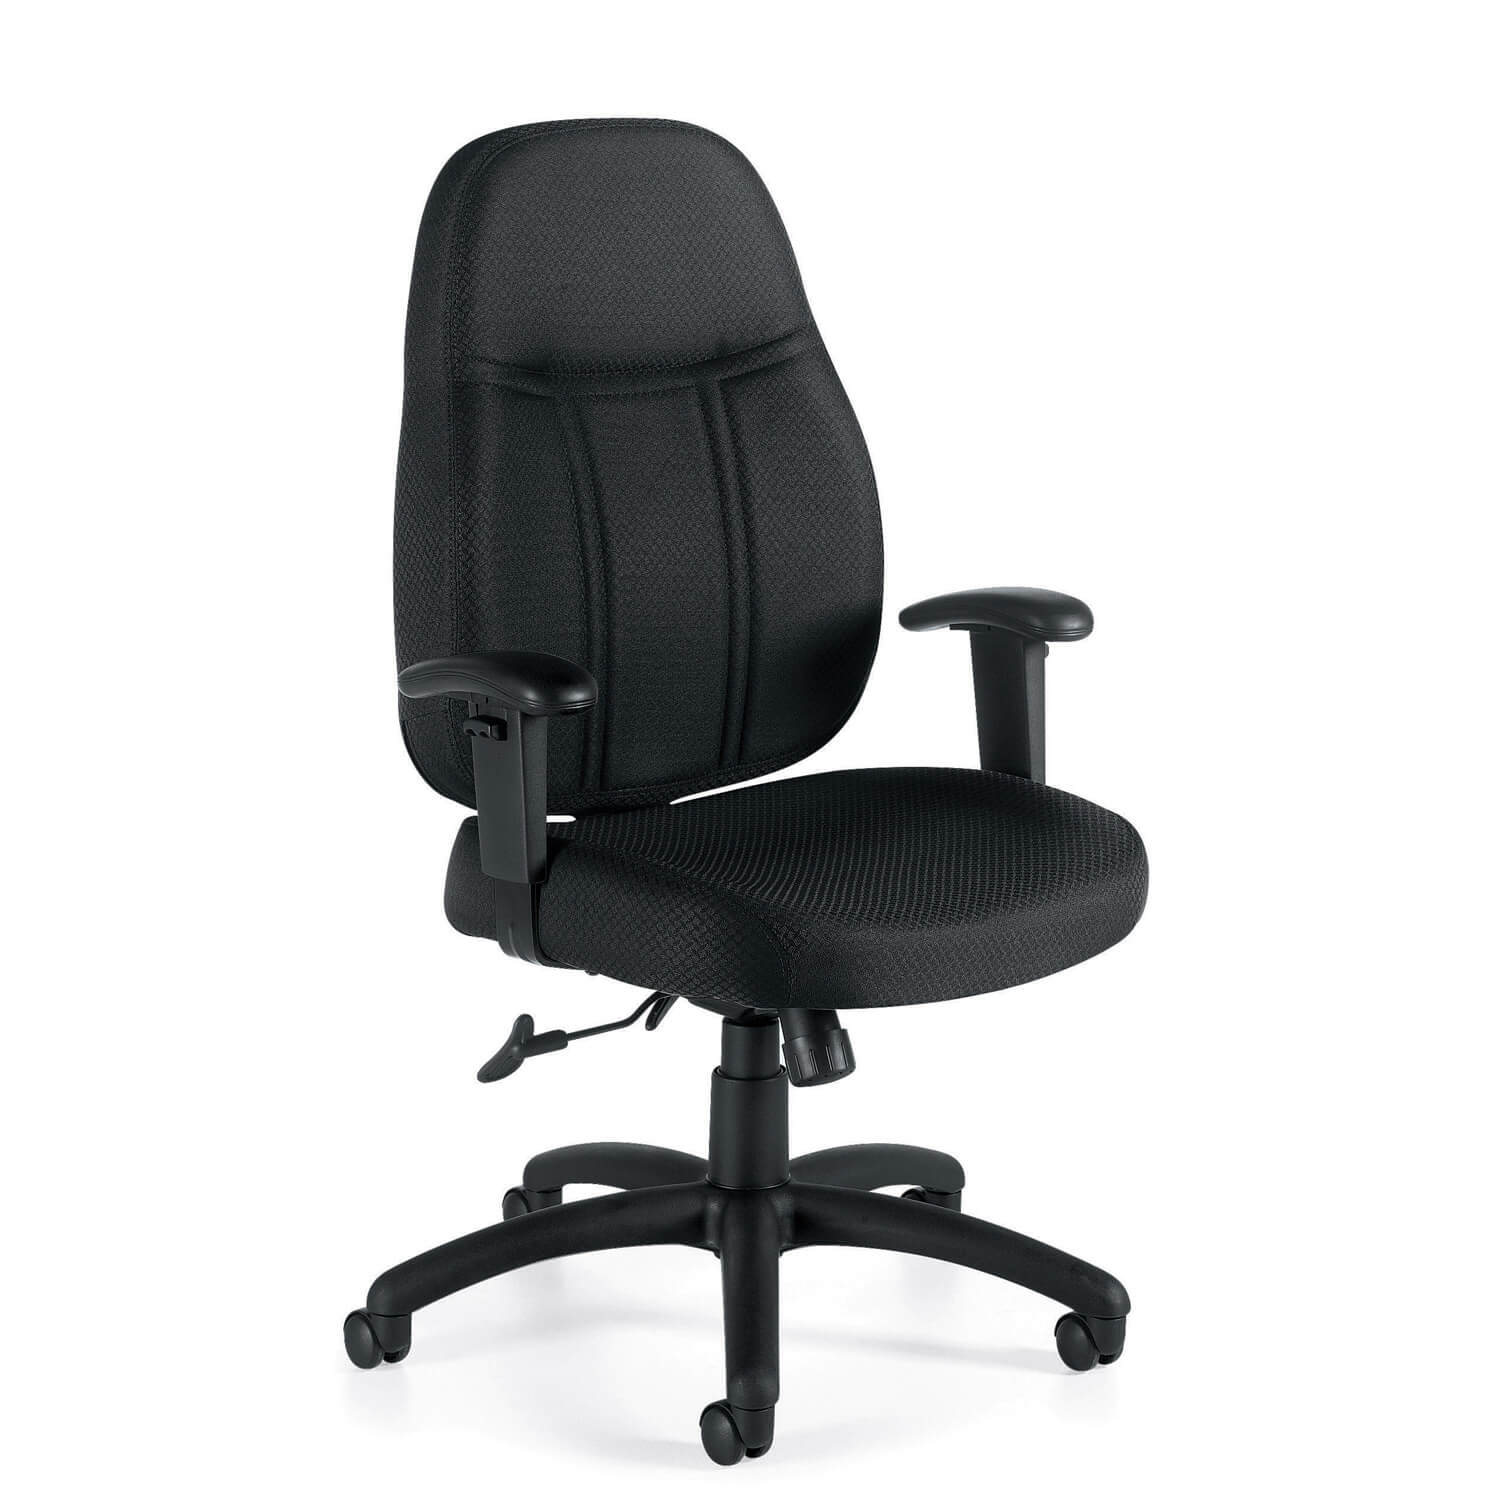 desk chair adjustable flexsteel and ottoman jasonni office chairs